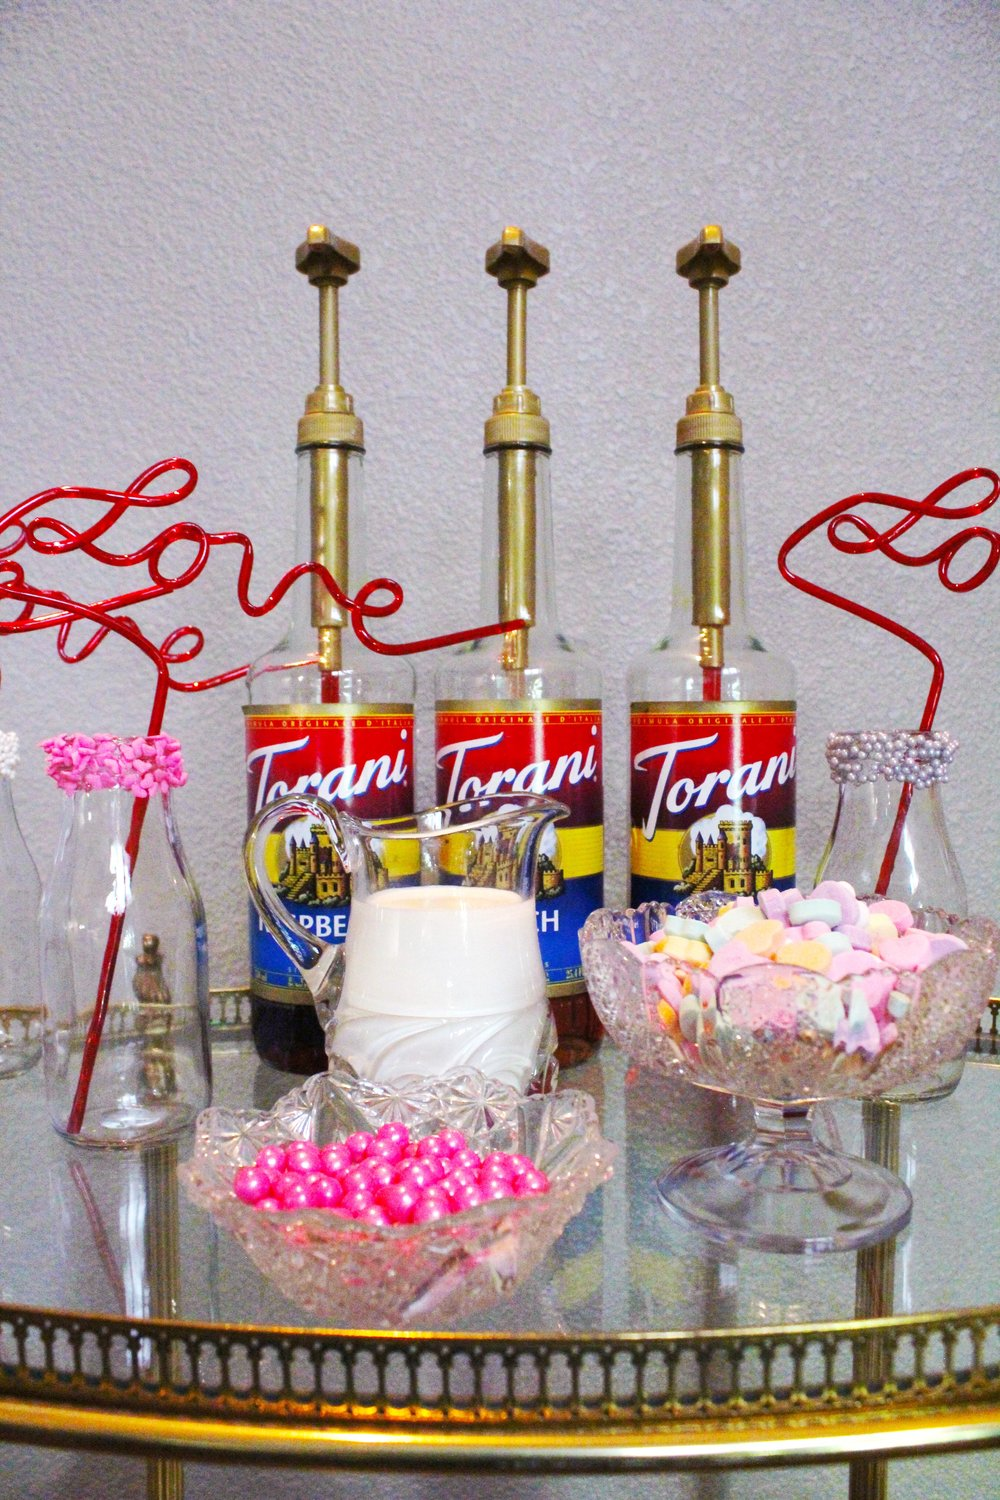 Italian Soda Bar Cart_Valentine's Day_Torani Syrups_Toppings_Design Organize Party.JPG